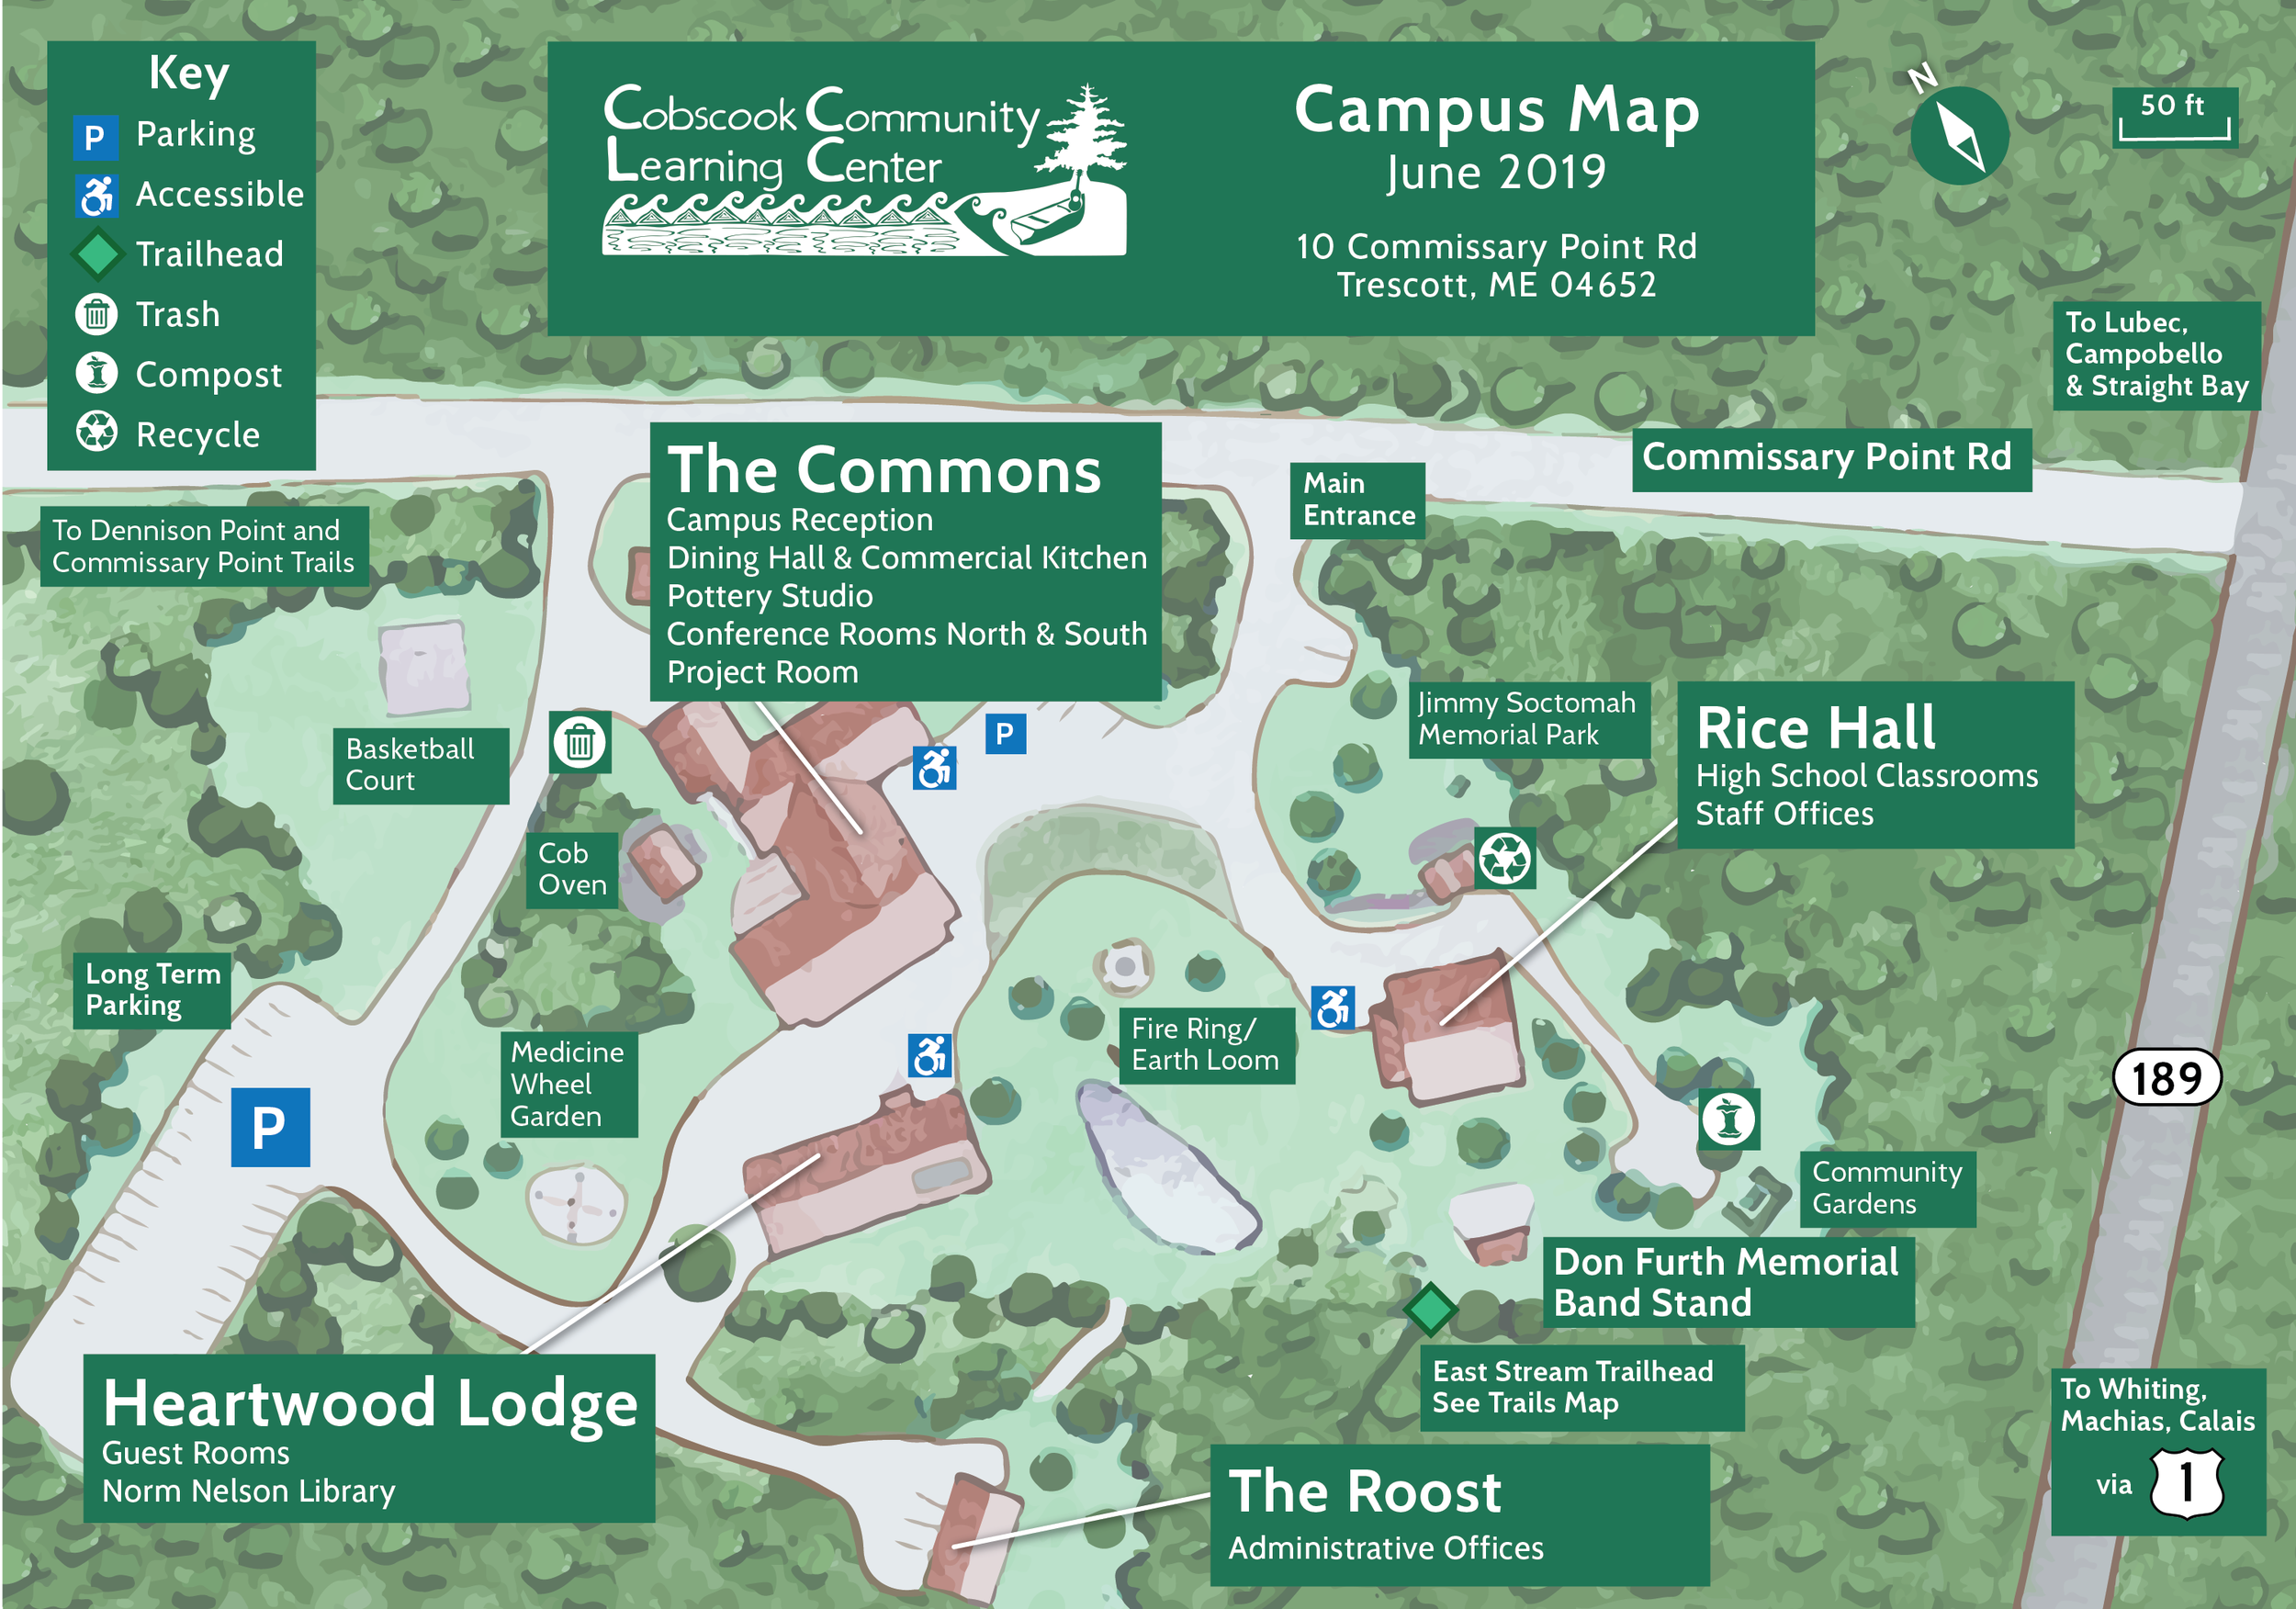 CCLC Campus Map 6-2019.png